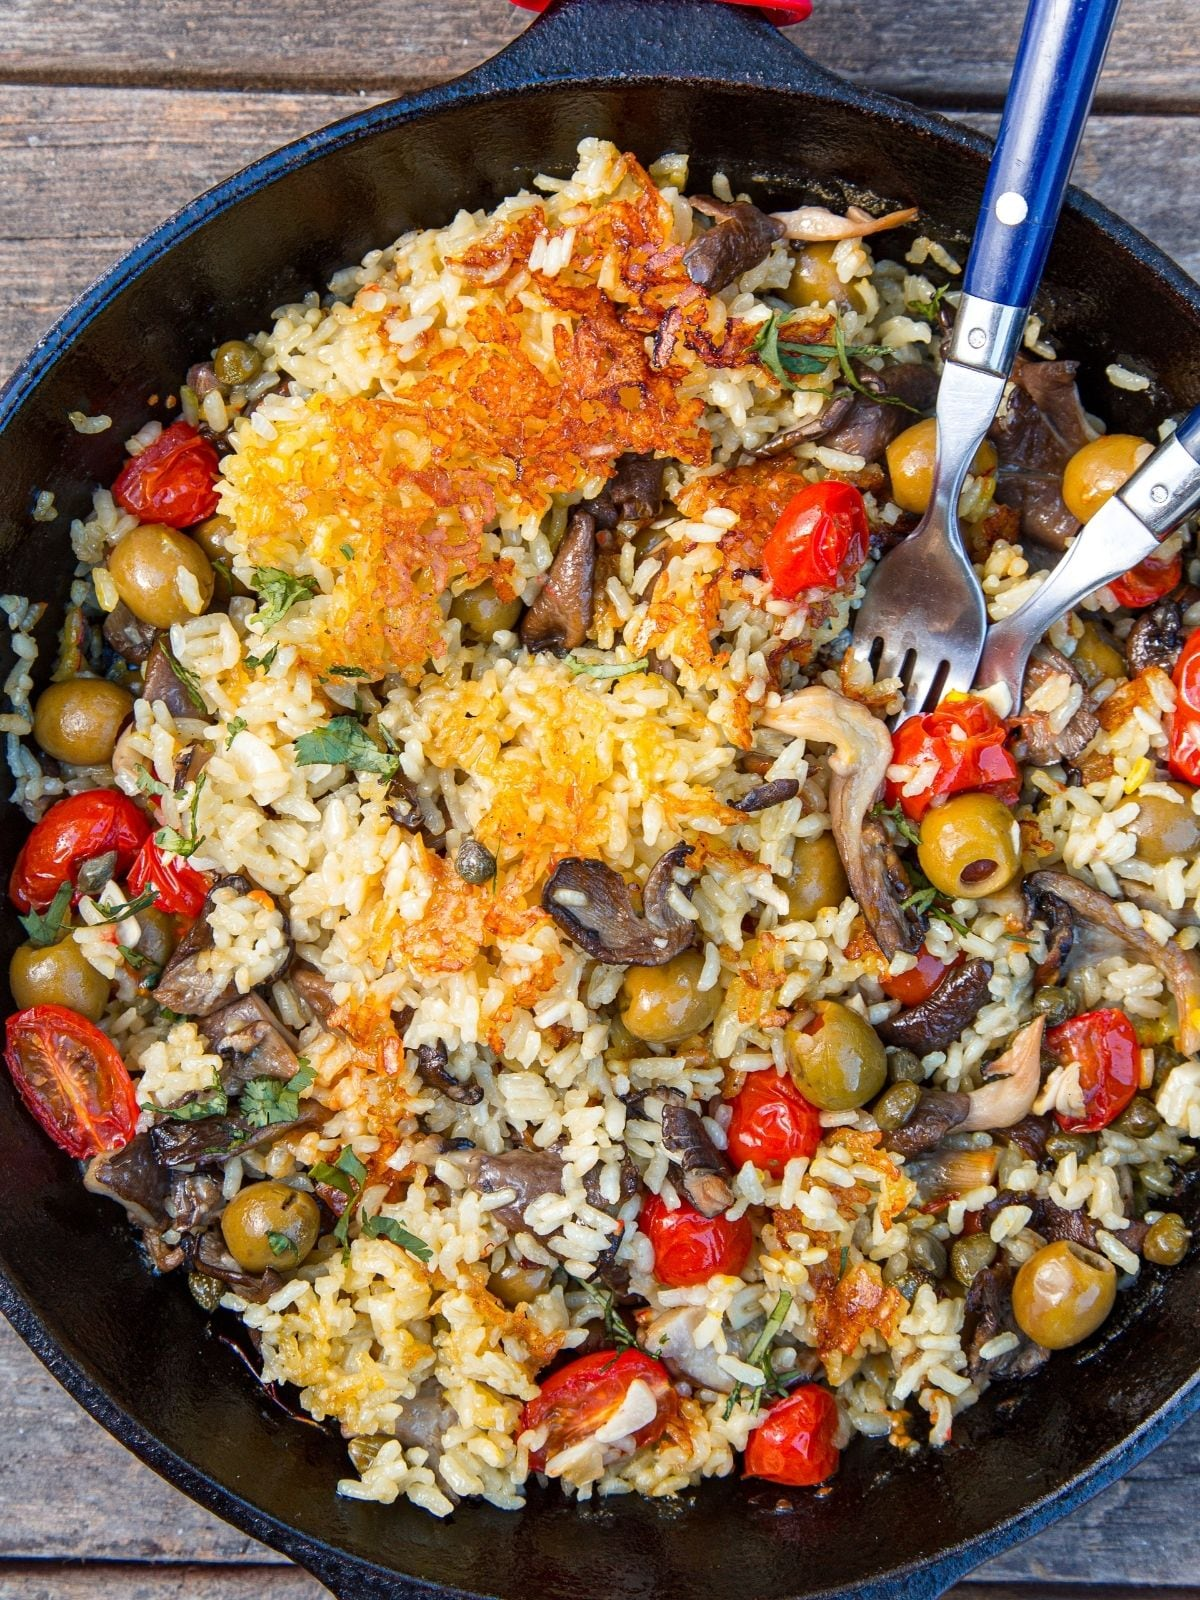 Overhead view of vegan paella in a skillet